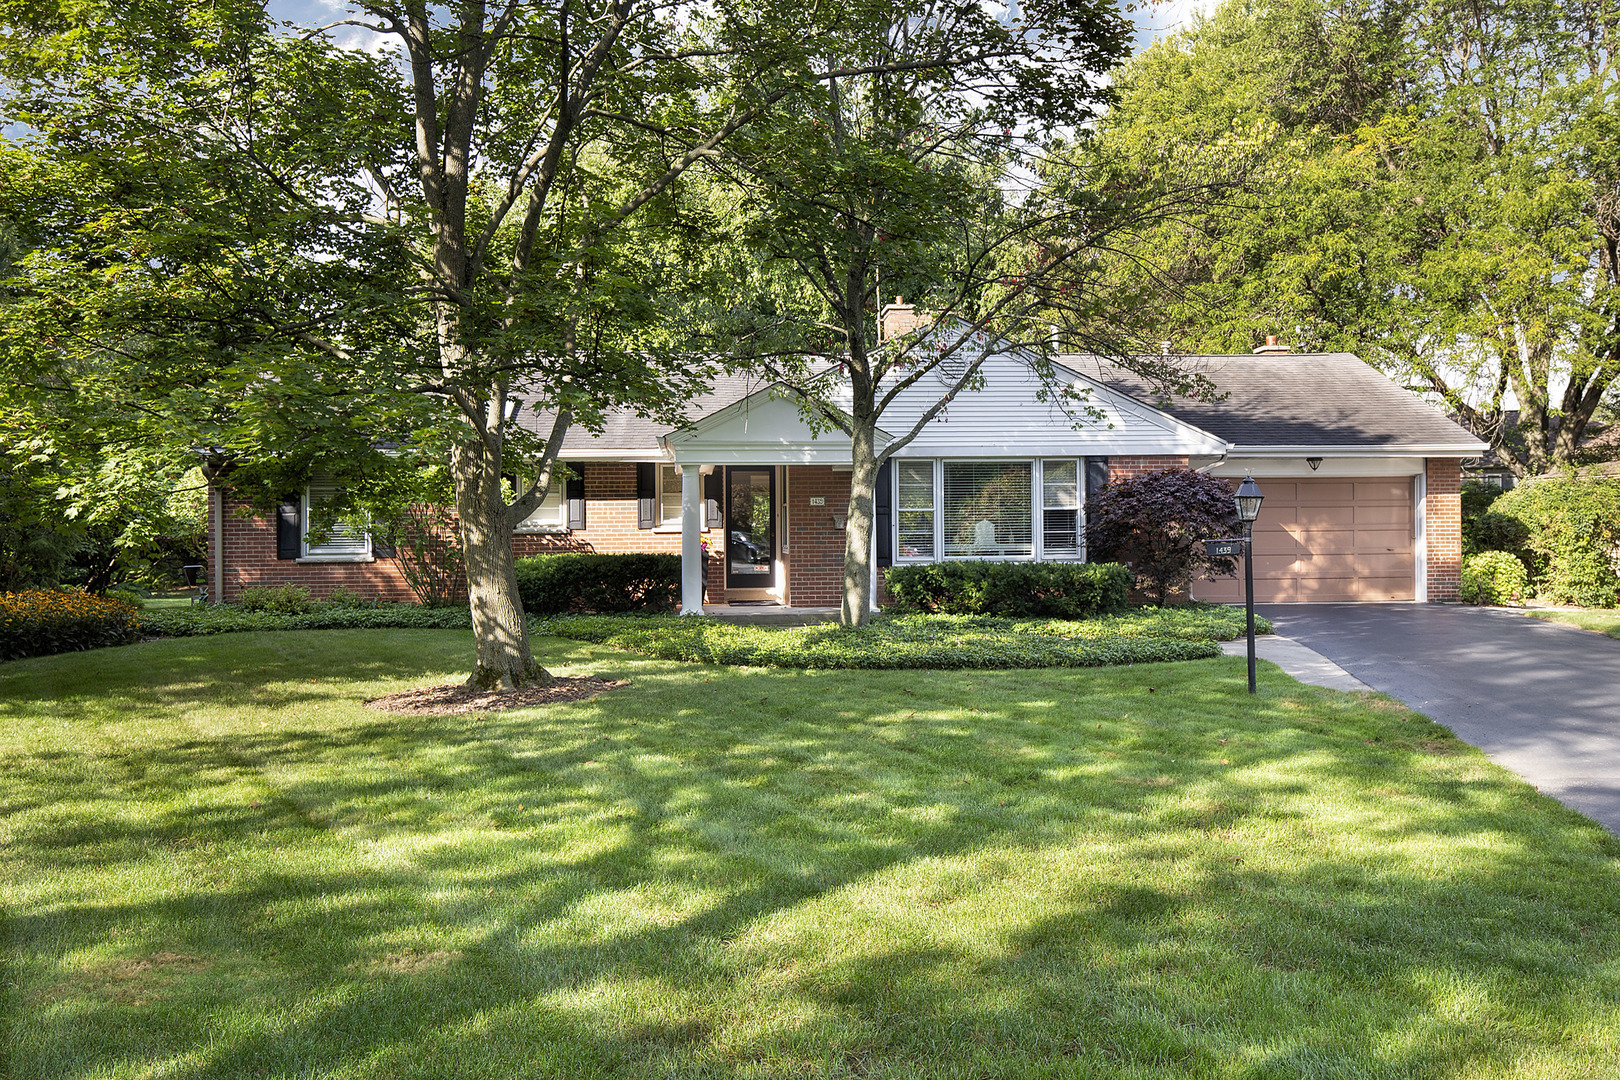 1439 Kenilworth Lane, Glenview in Cook County, IL 60025 Home for Sale